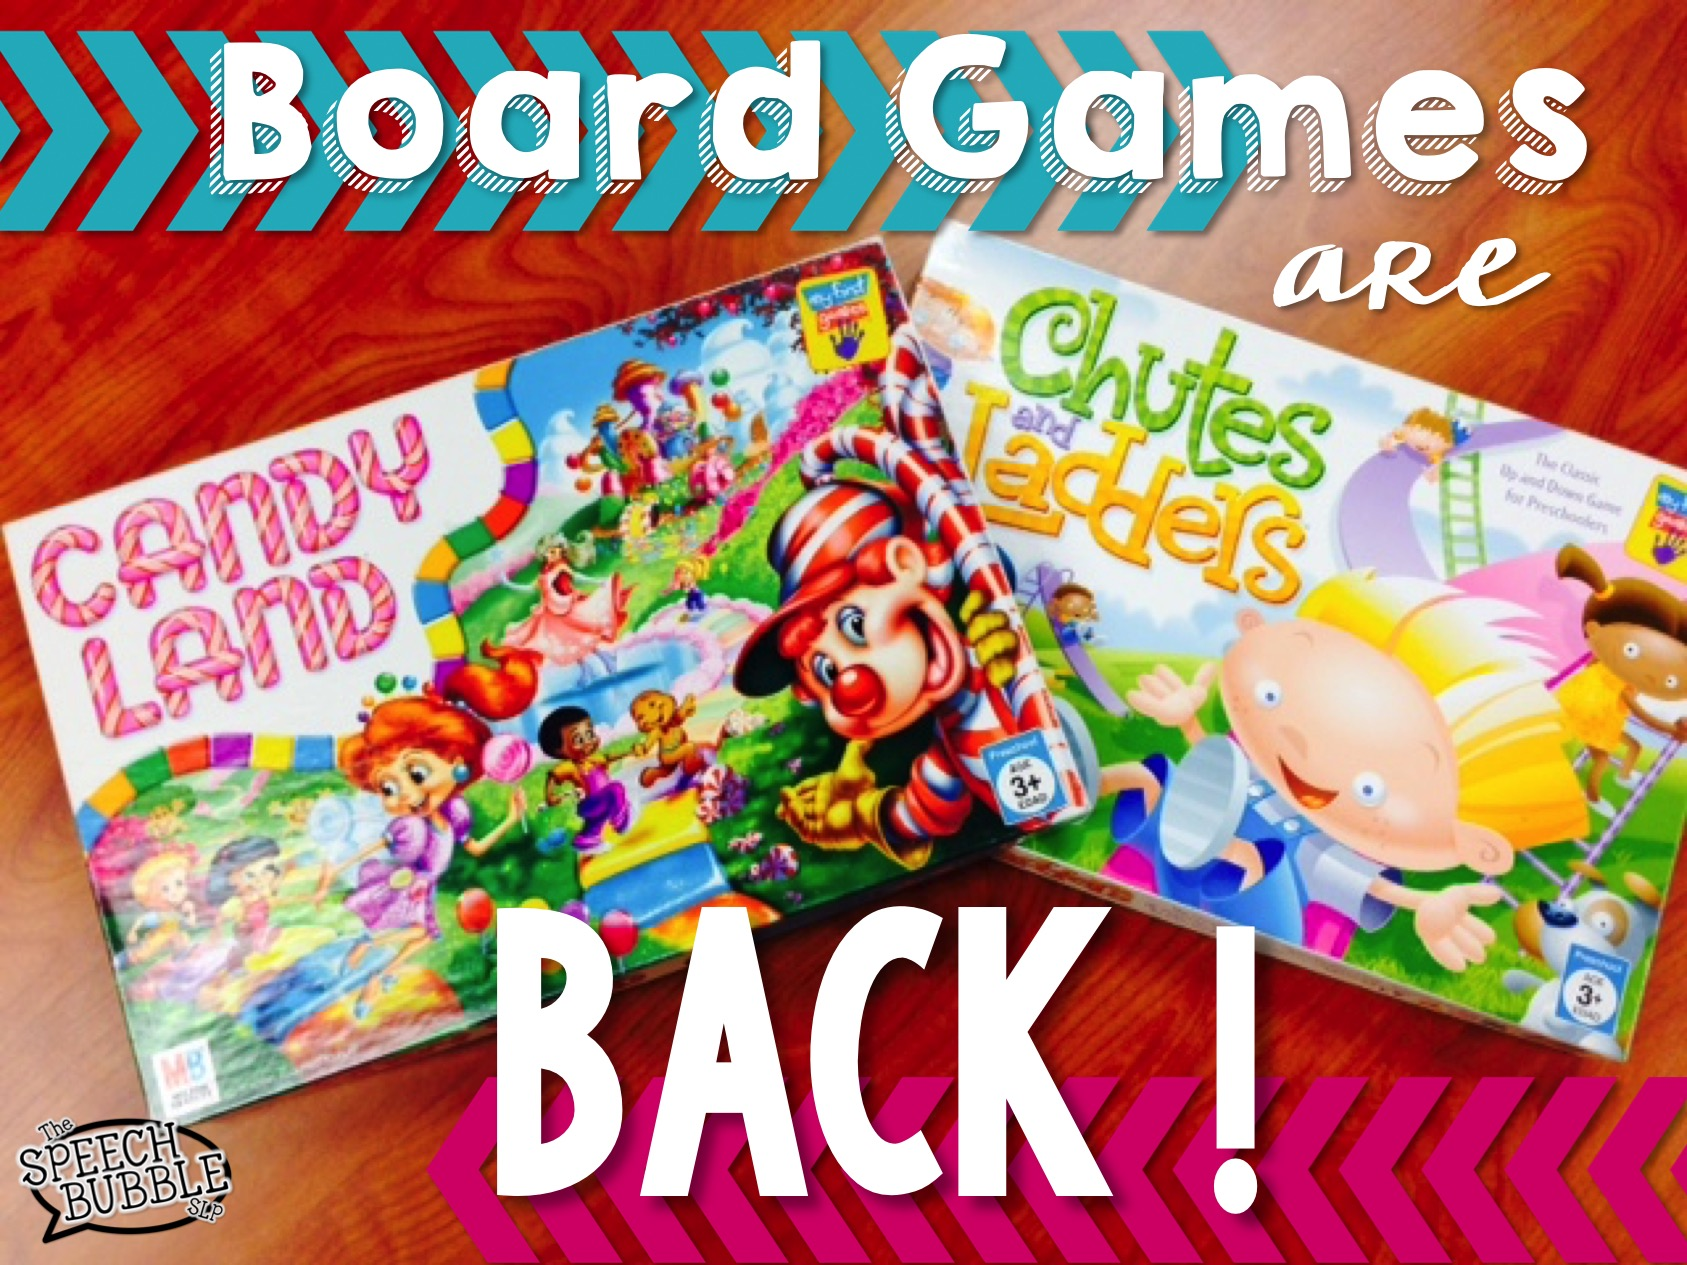 Board Games are Back!